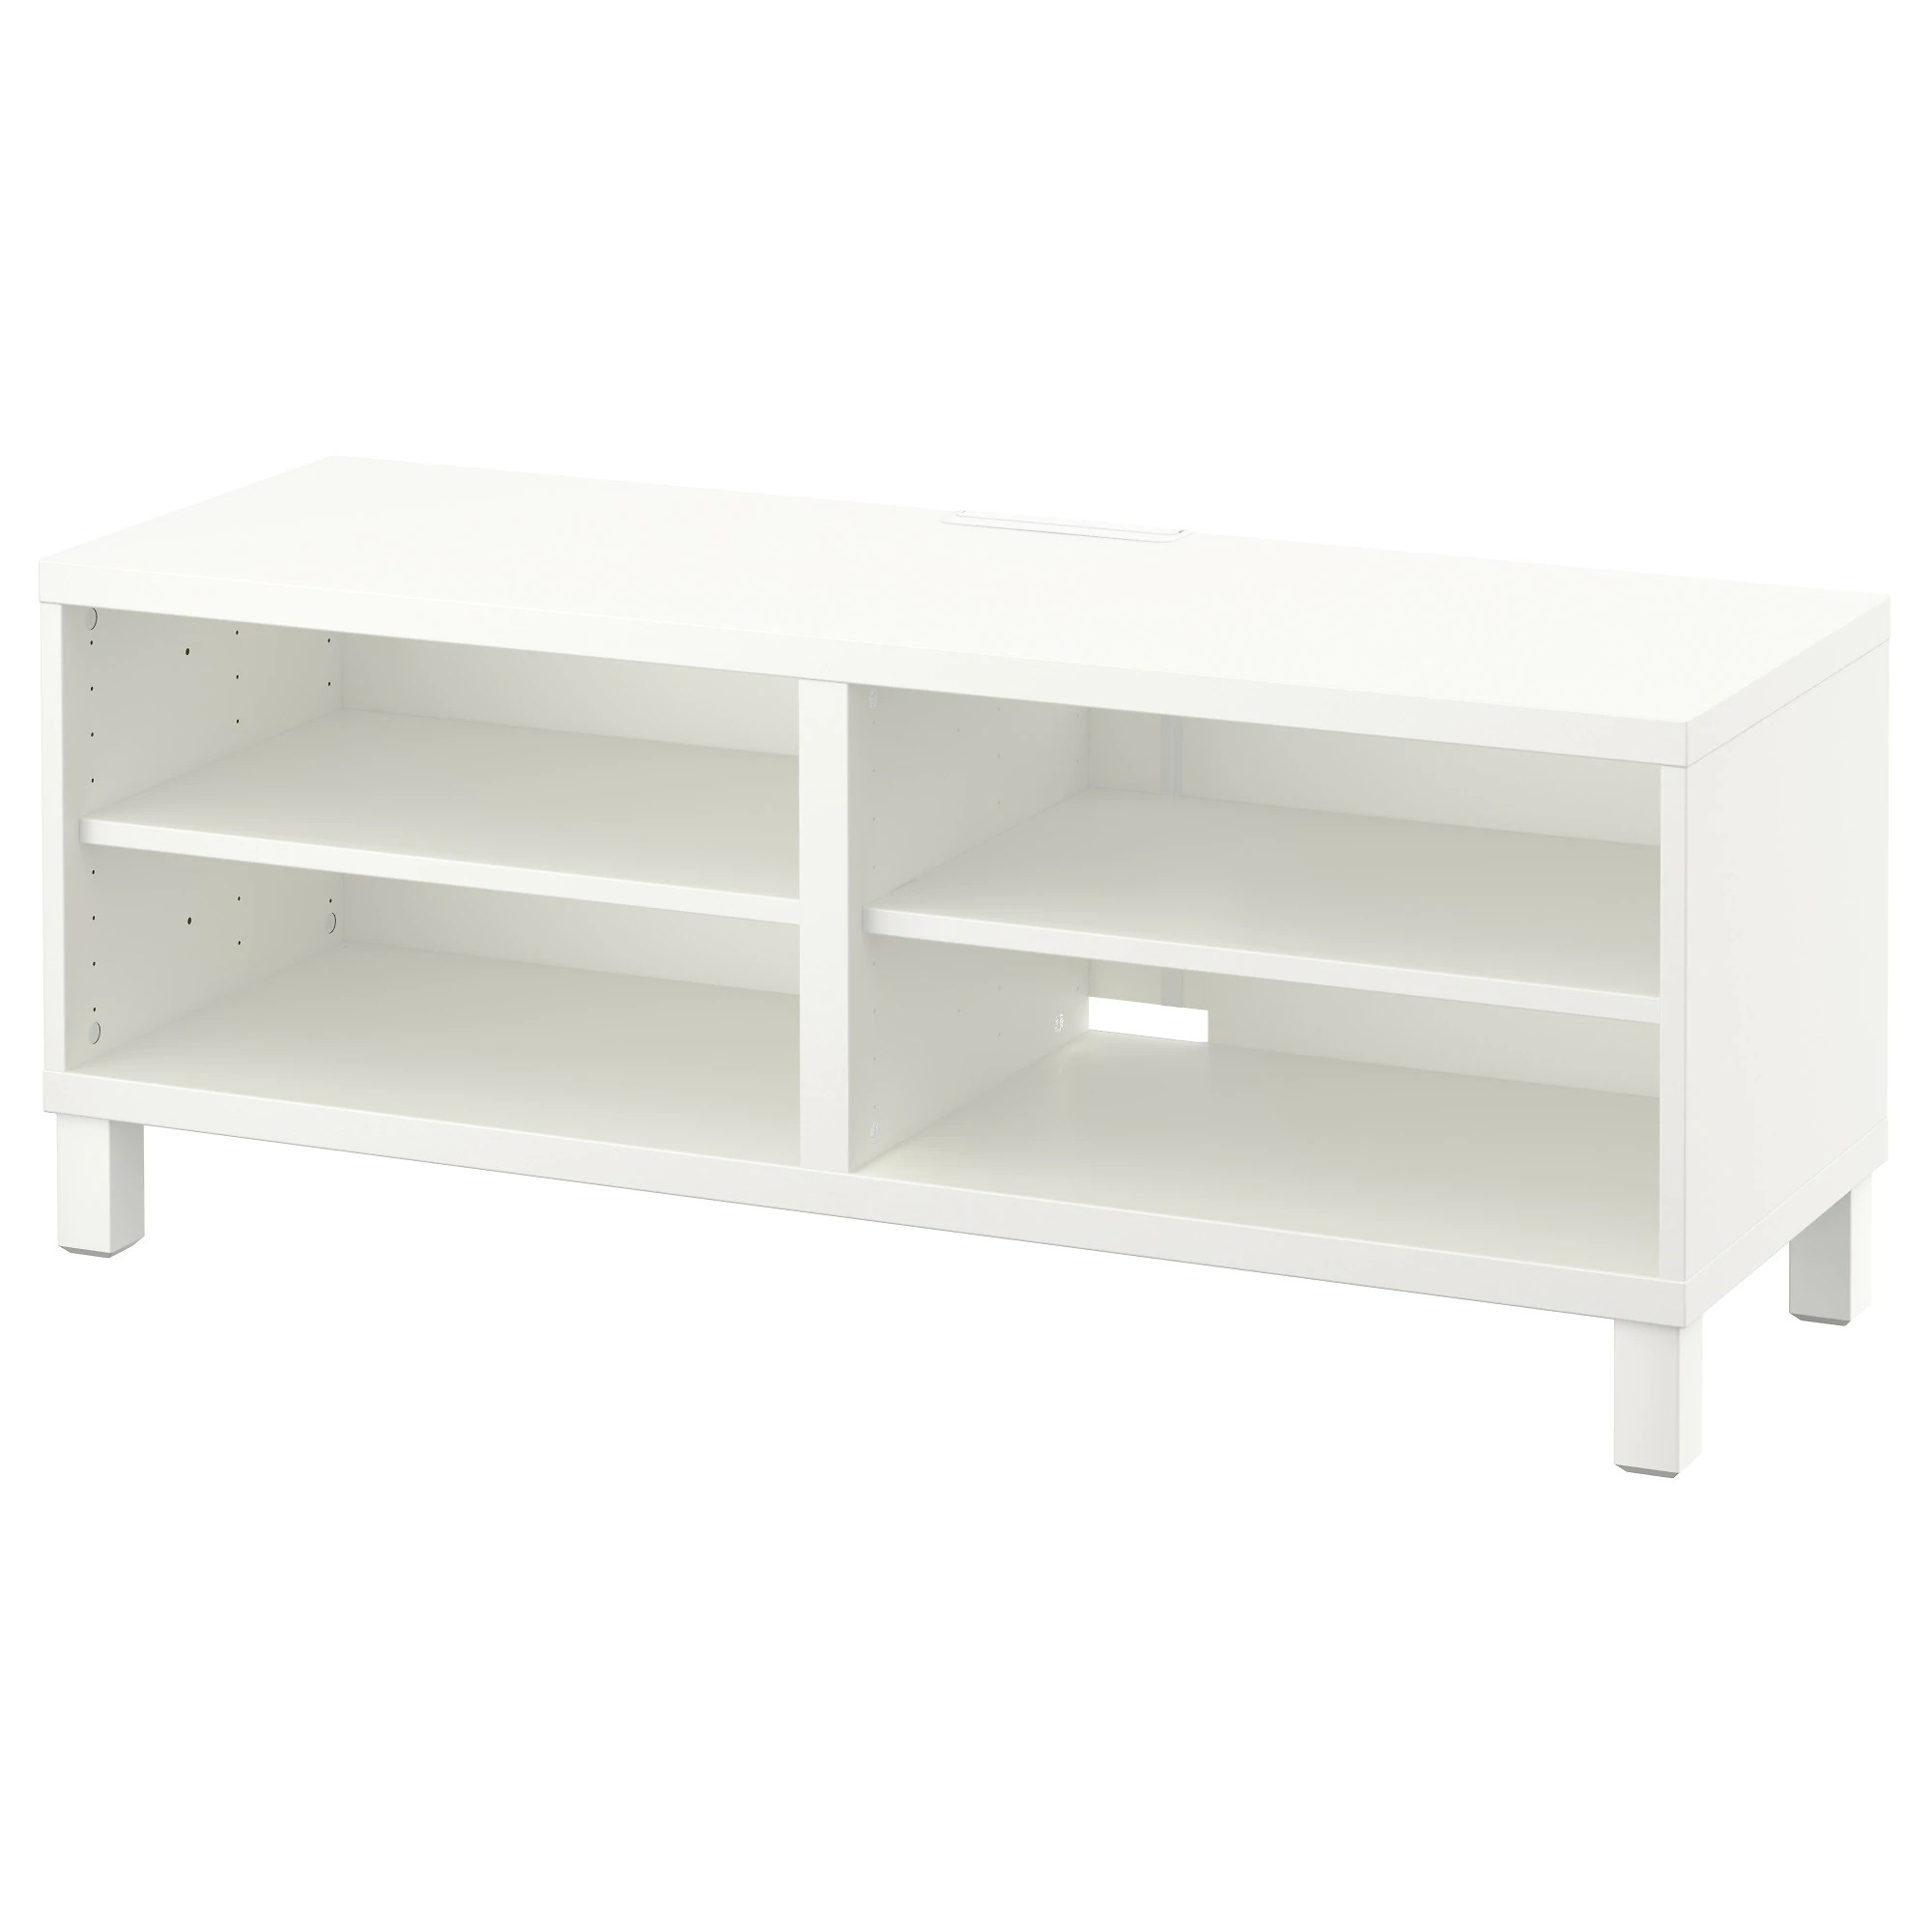 Ikea Bank Code Tv Unit BestÅ White